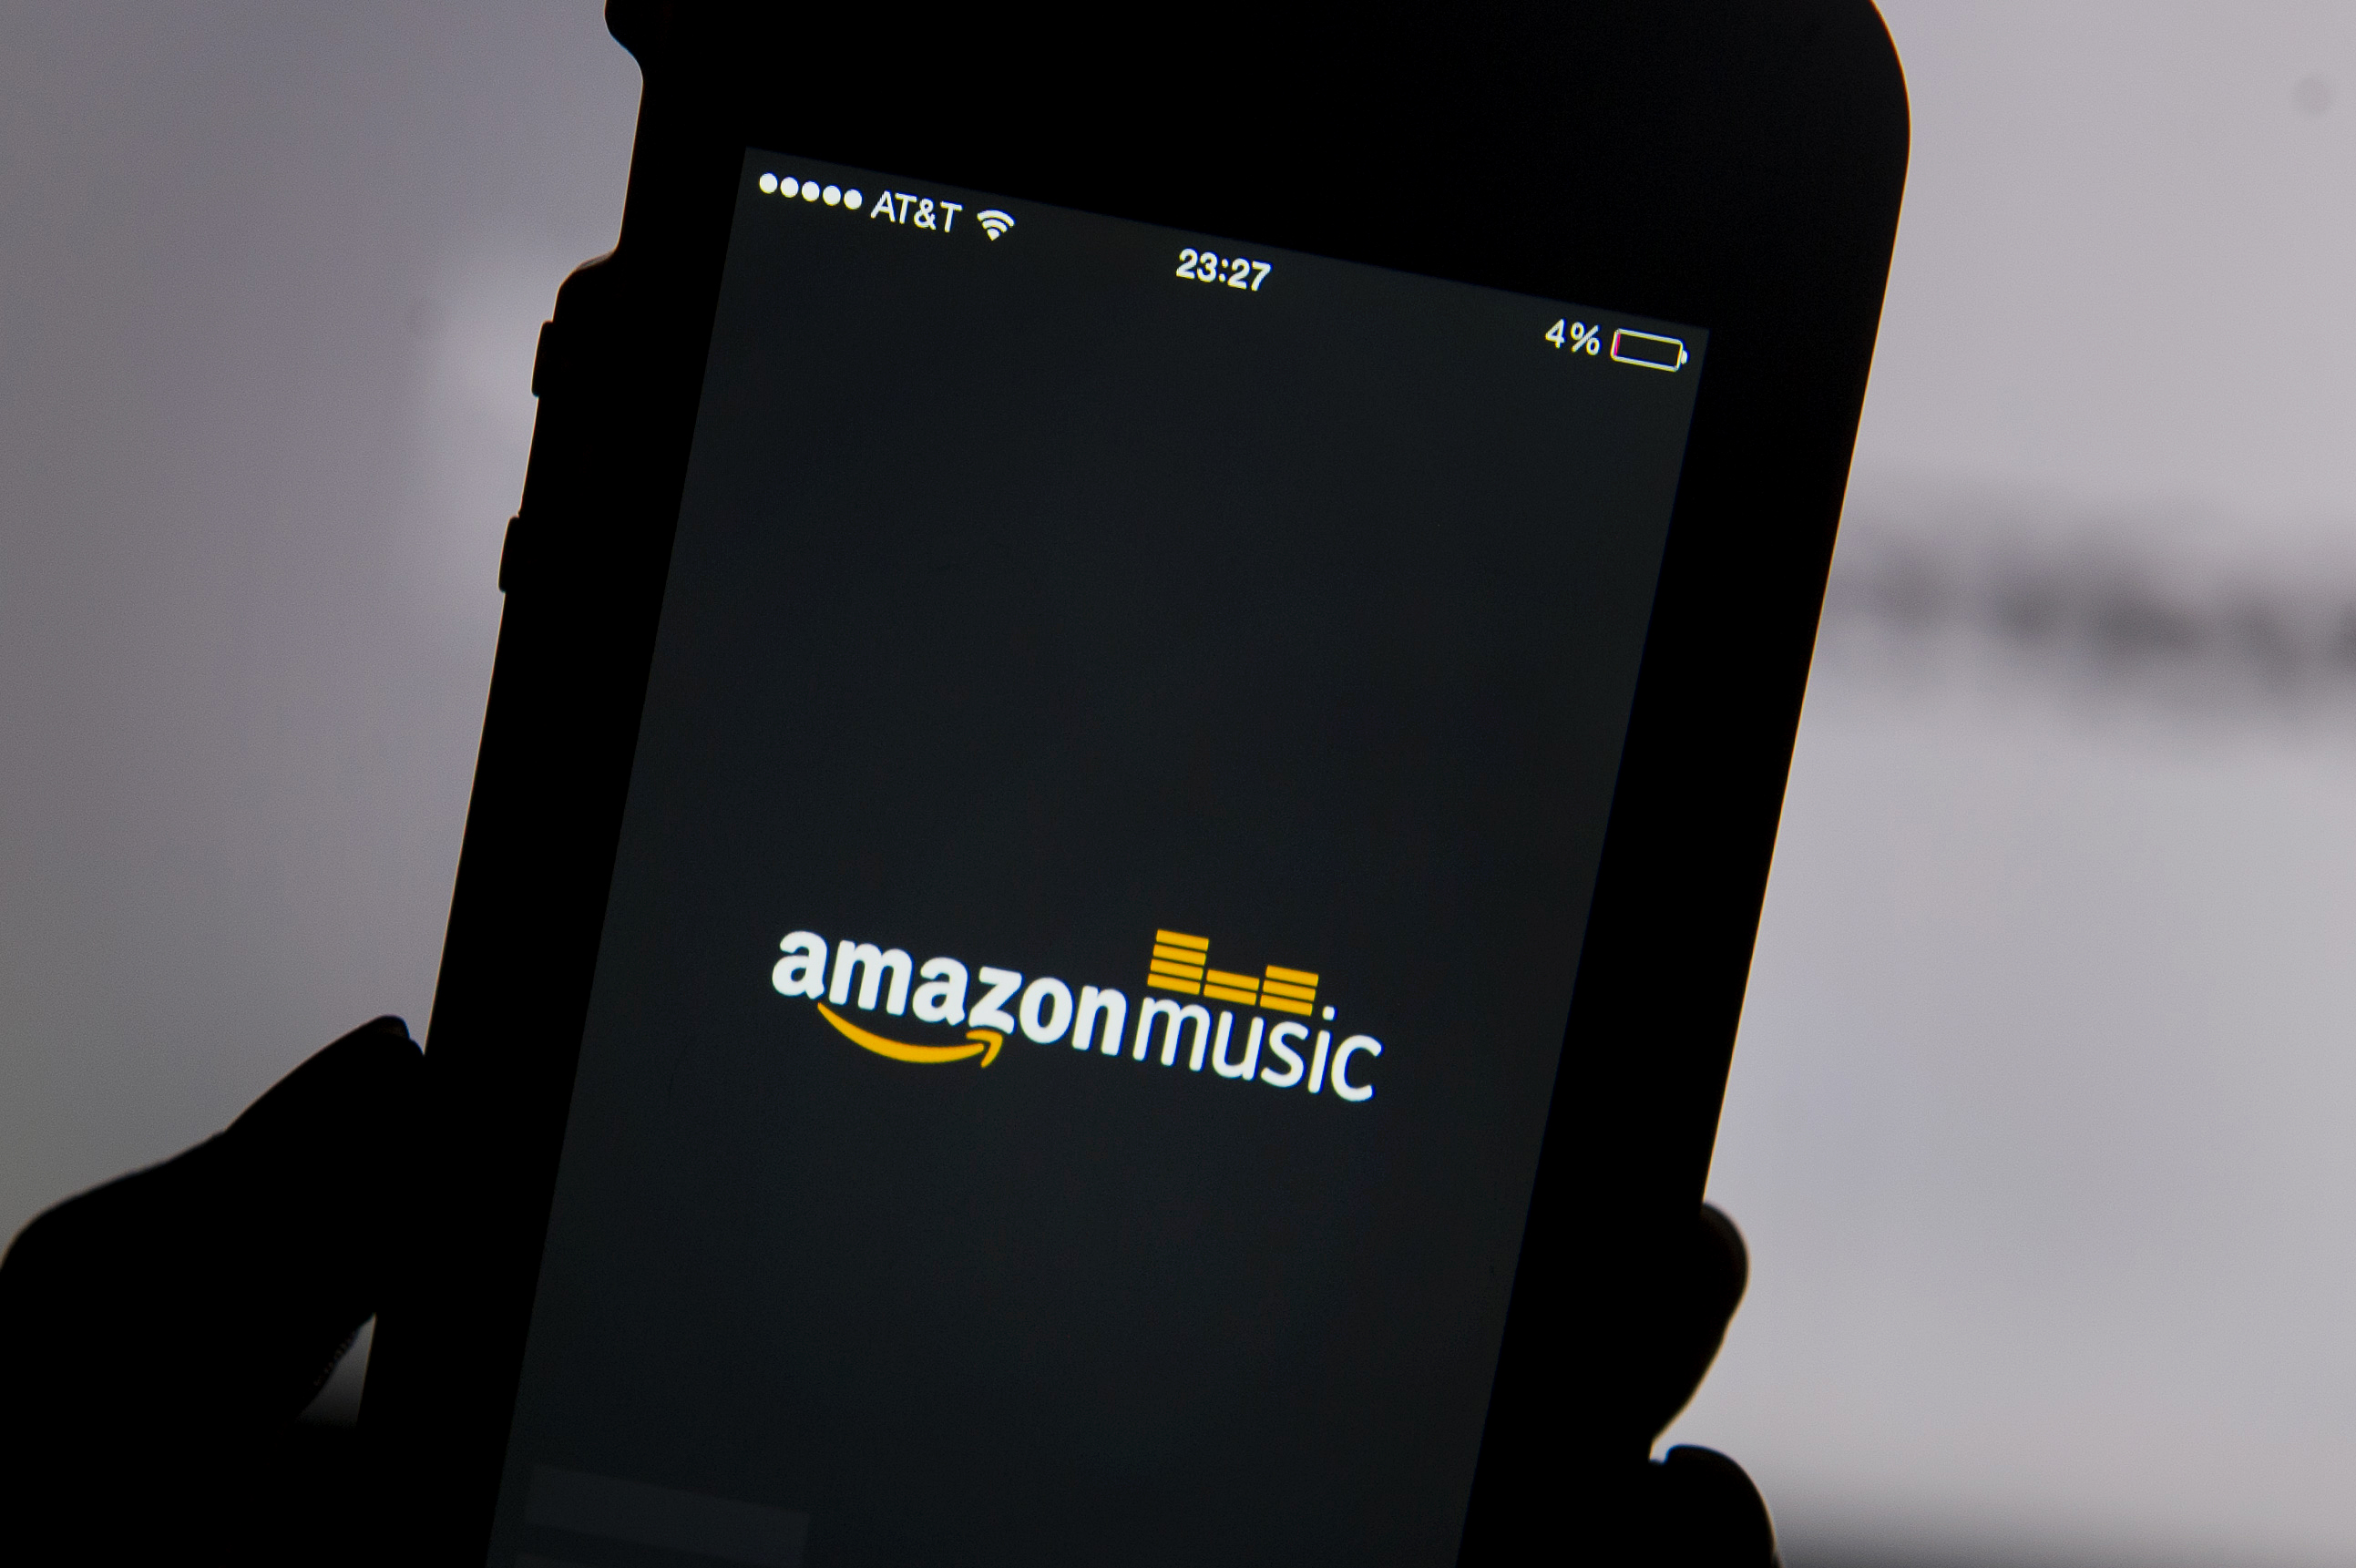 Amazon Starts Music Streaming Service Without Universal